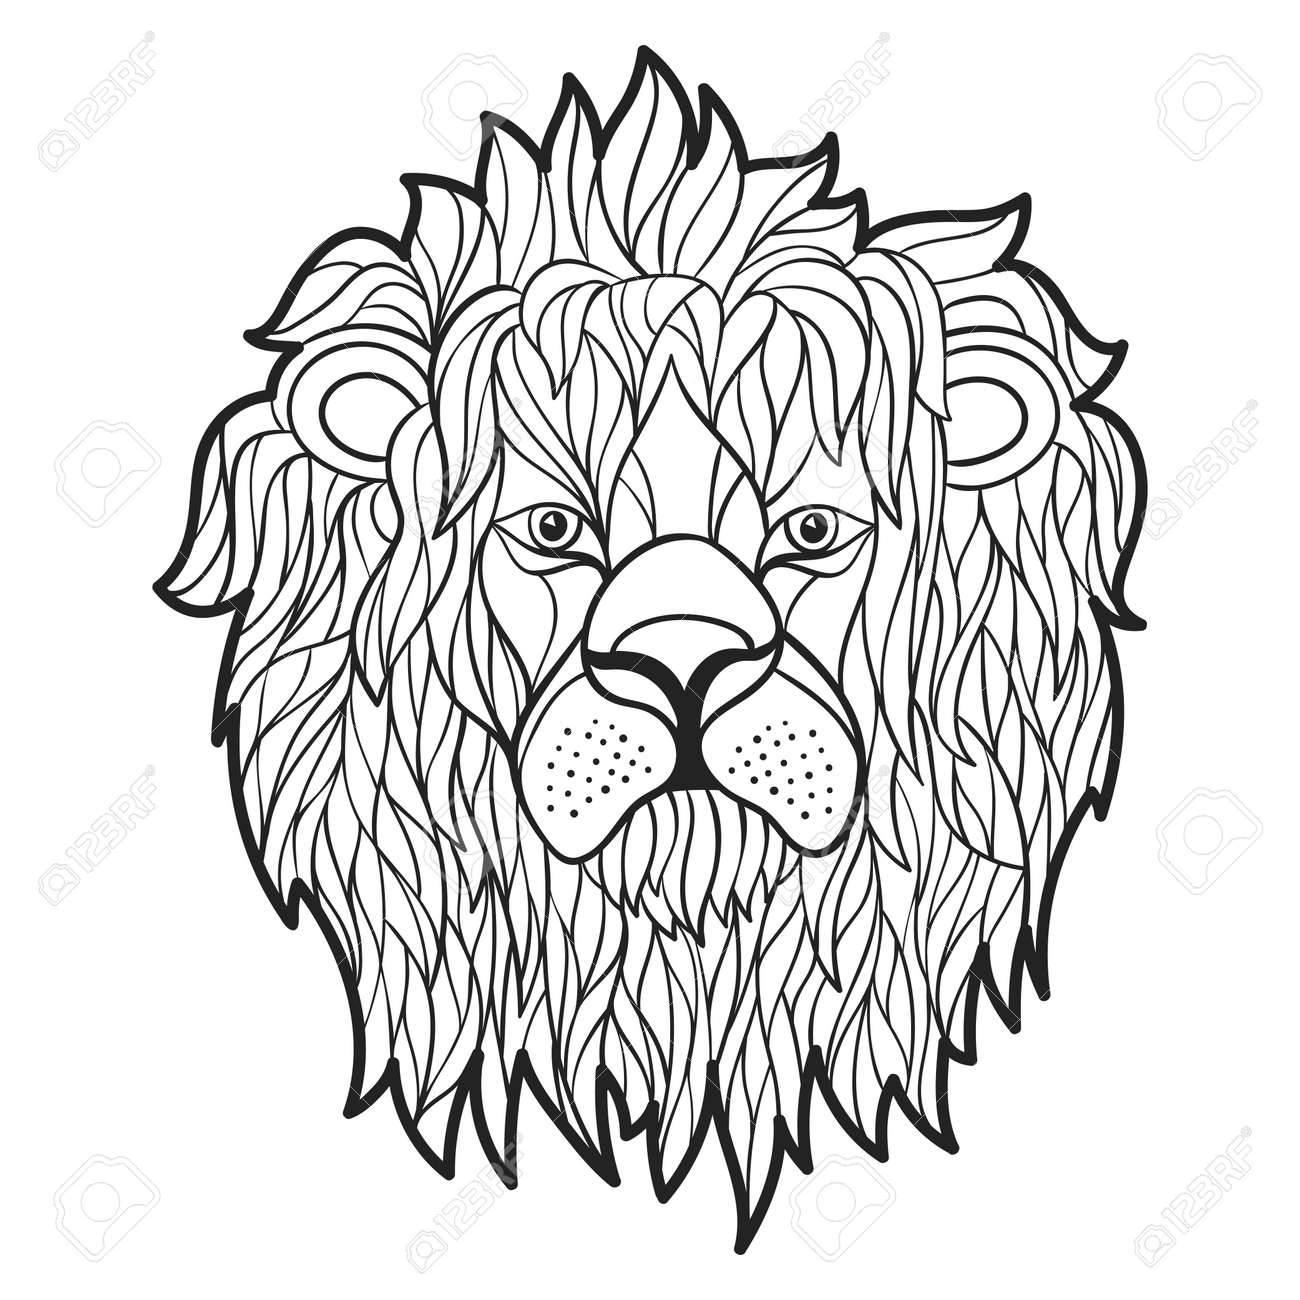 Vector Monochrome Hand Drawn Illustration Of Lion Face. Coloring ...